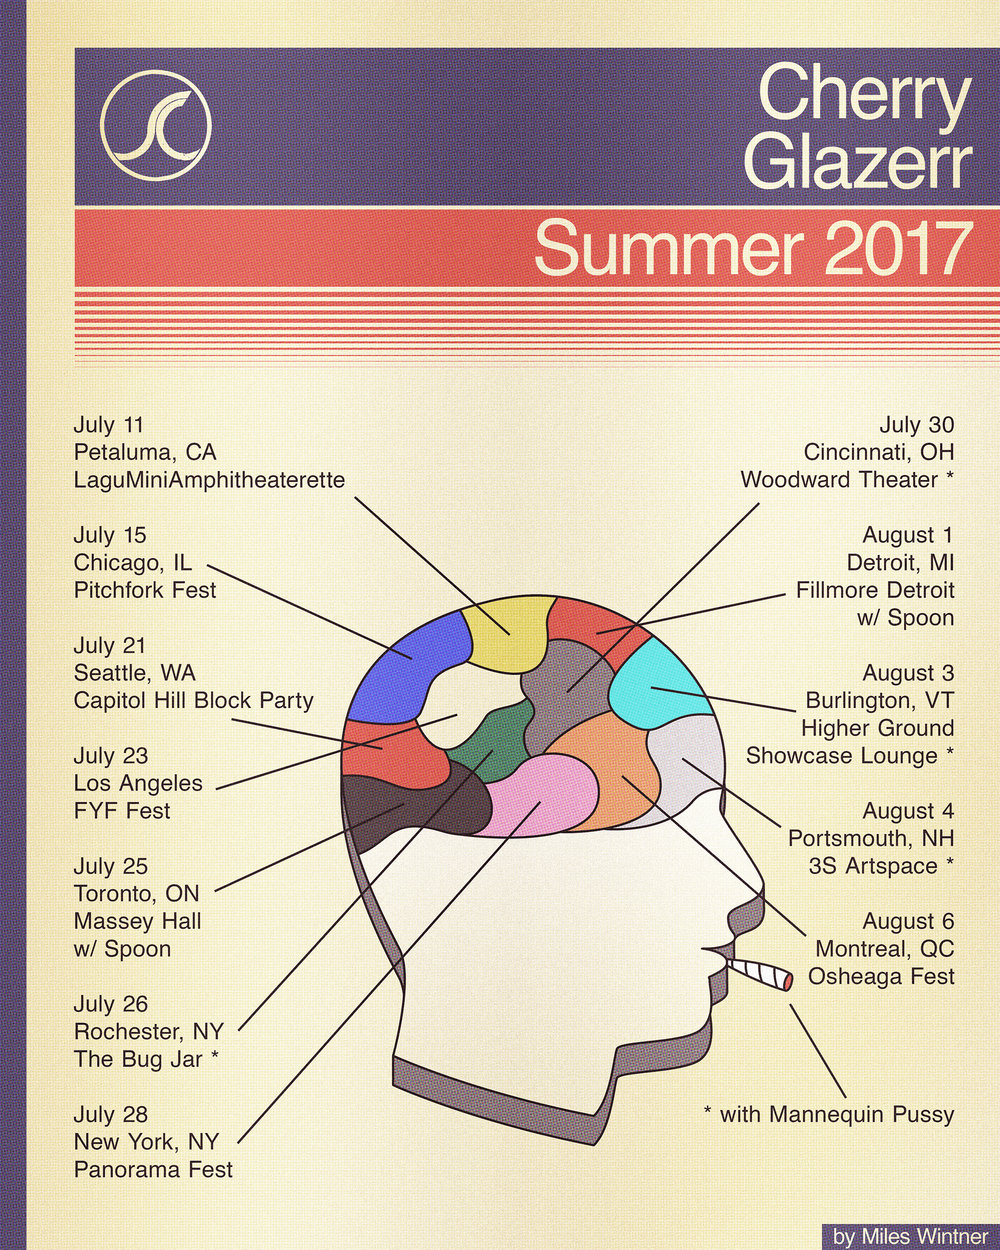 Tour poster for Cherry Glazerr